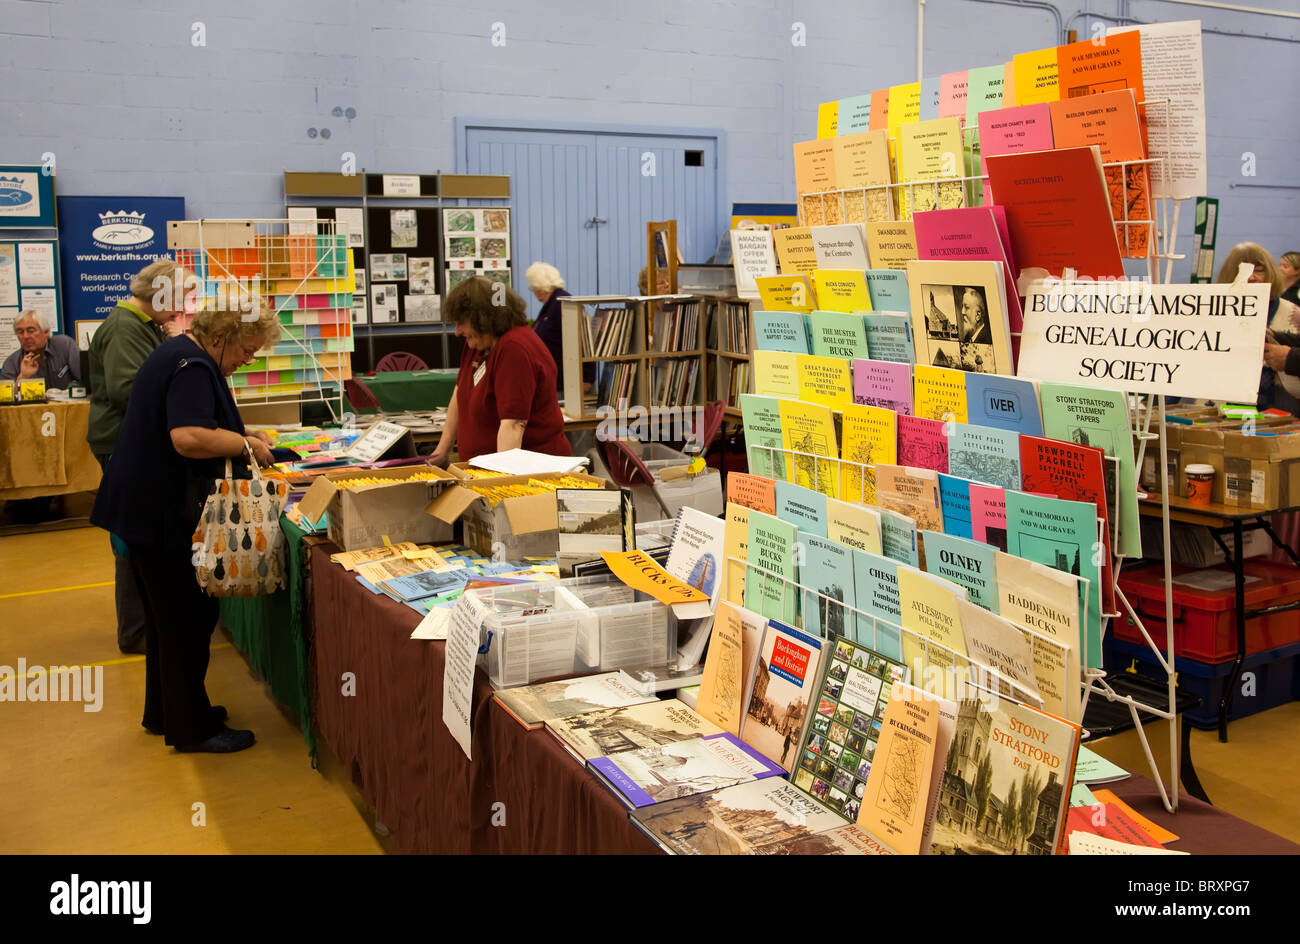 Booklets on sale at family history meeting England UK - Stock Image